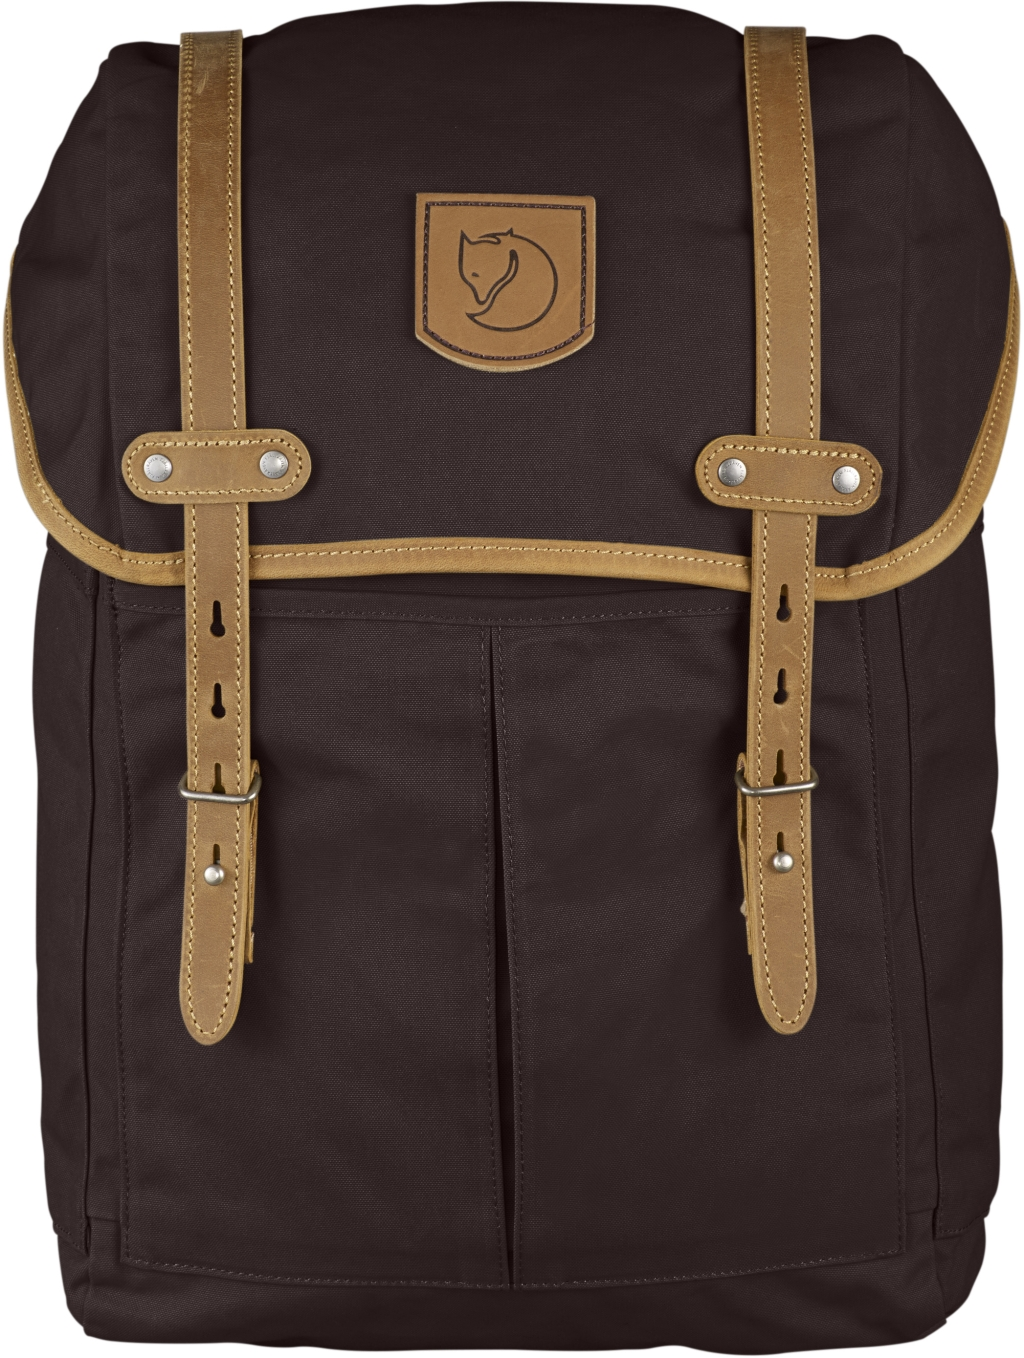 FjallRaven Rucksack No.21 Medium Hickory Brown-30